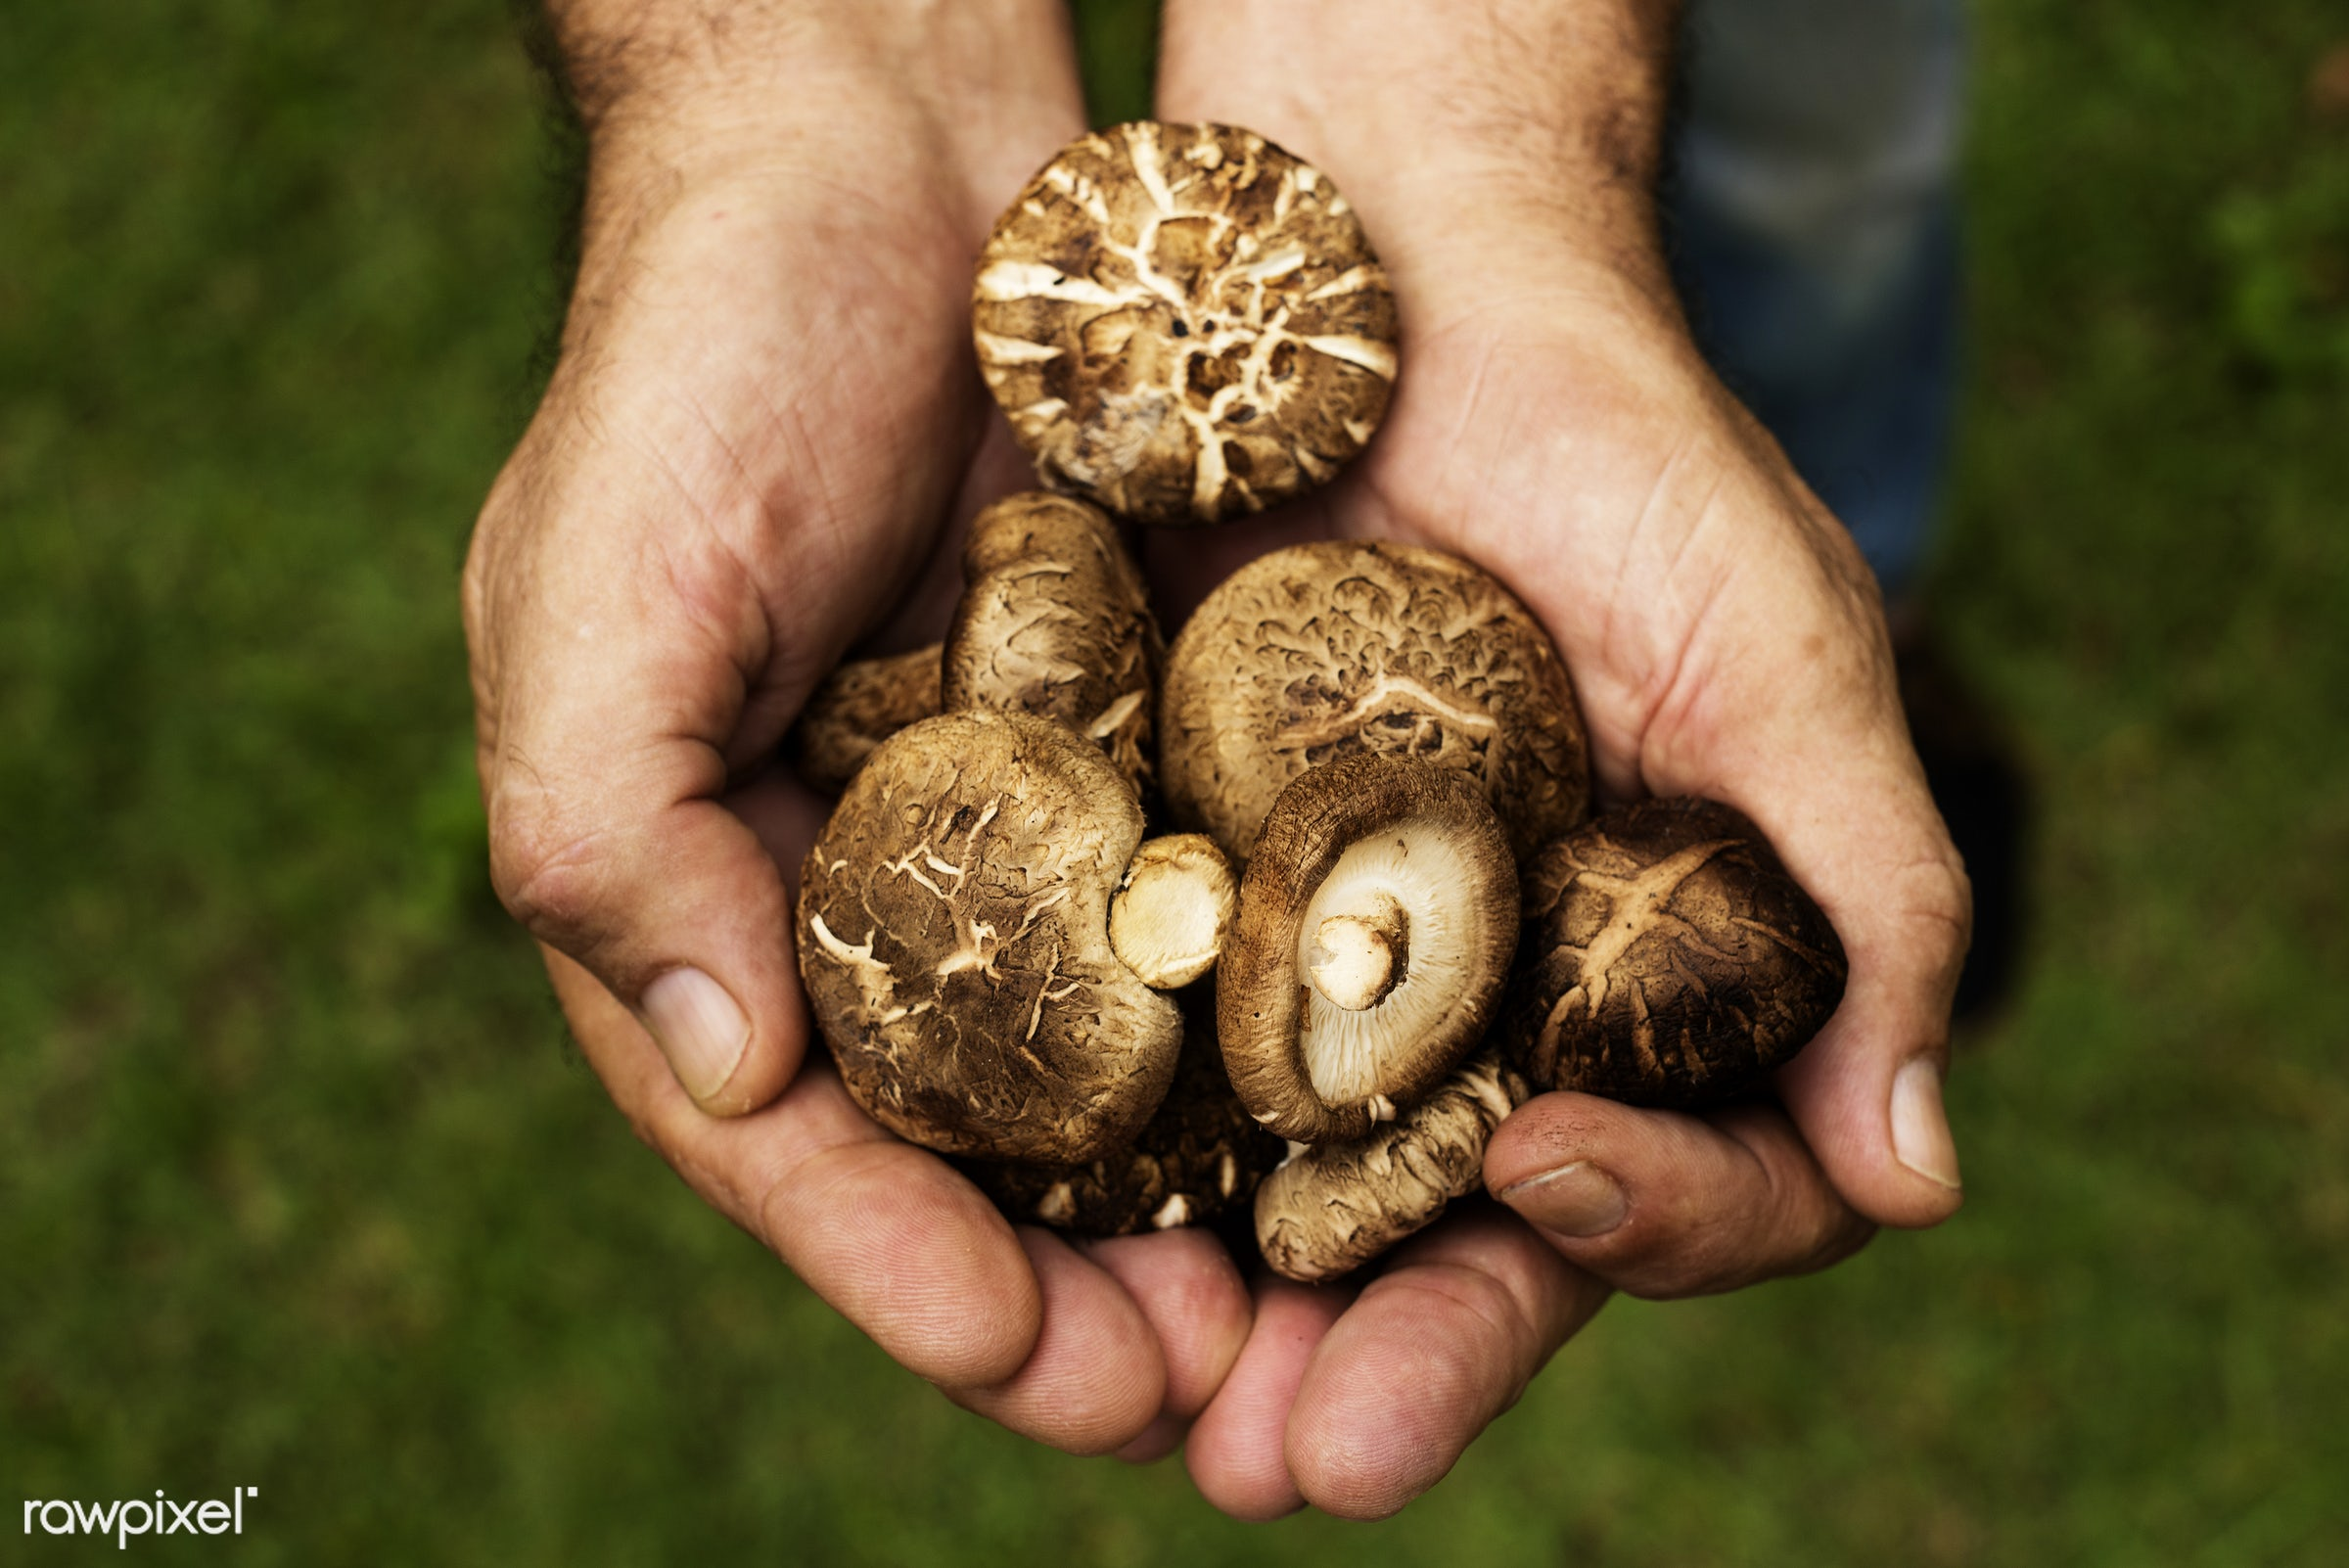 mushroom, plant, raw, cuisine, crop, hands, fresh, cultivation, pick, ingredient, agriculture, farming, product, organic,...